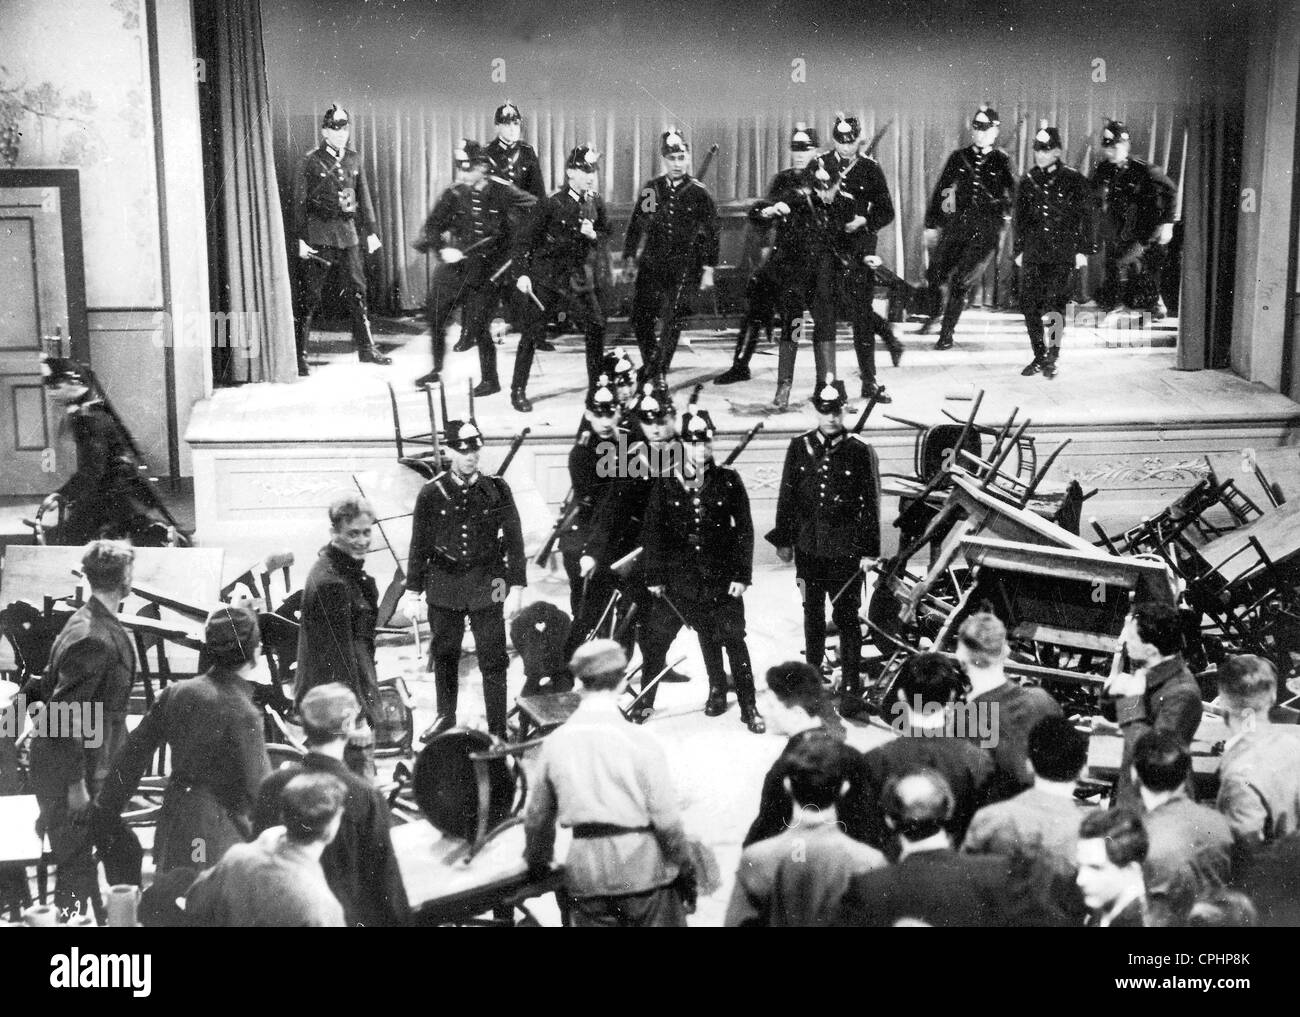 A brawl between Communists and National Socialists at a political meeting, broken up by policemen, 1929-32 (b/w - Stock Image